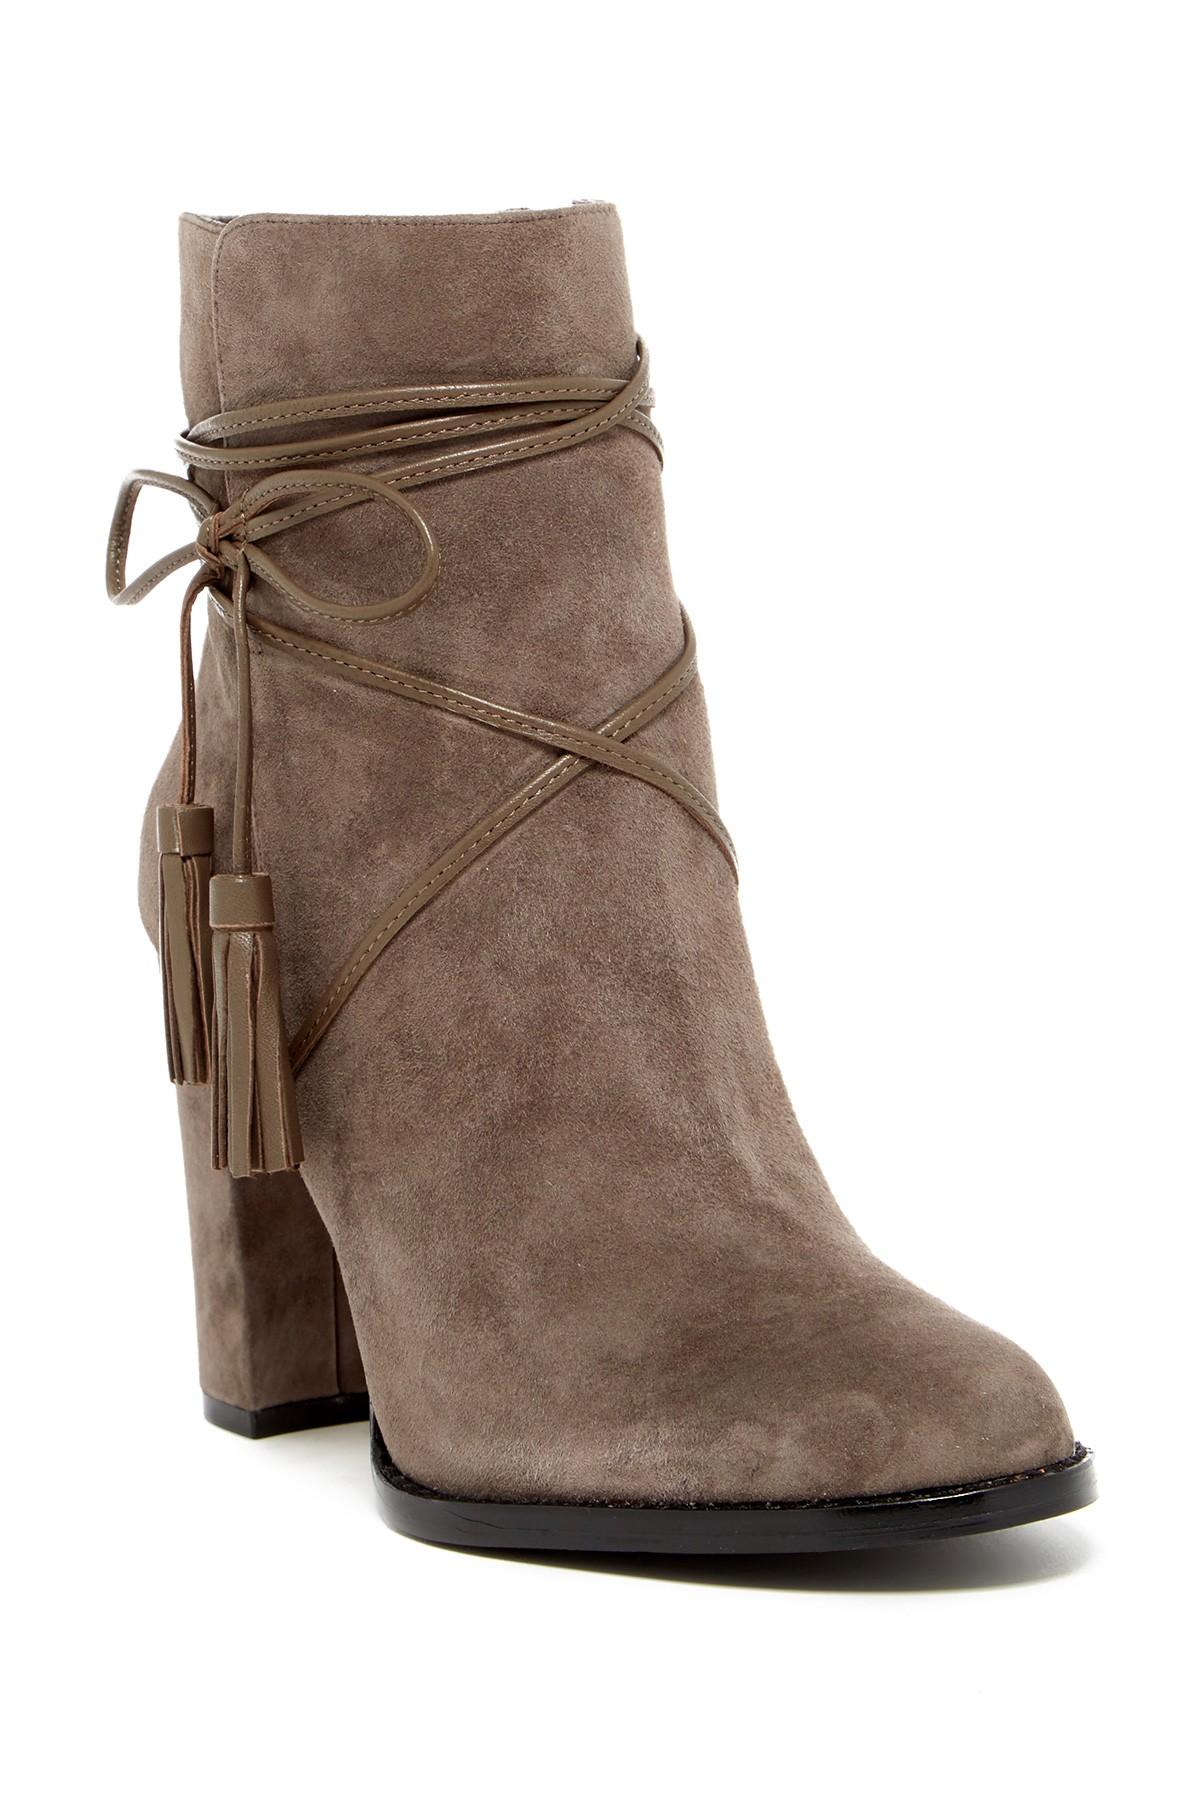 Vince Camuto Garrit Wraparound Lace Bootie In Brown Lyst